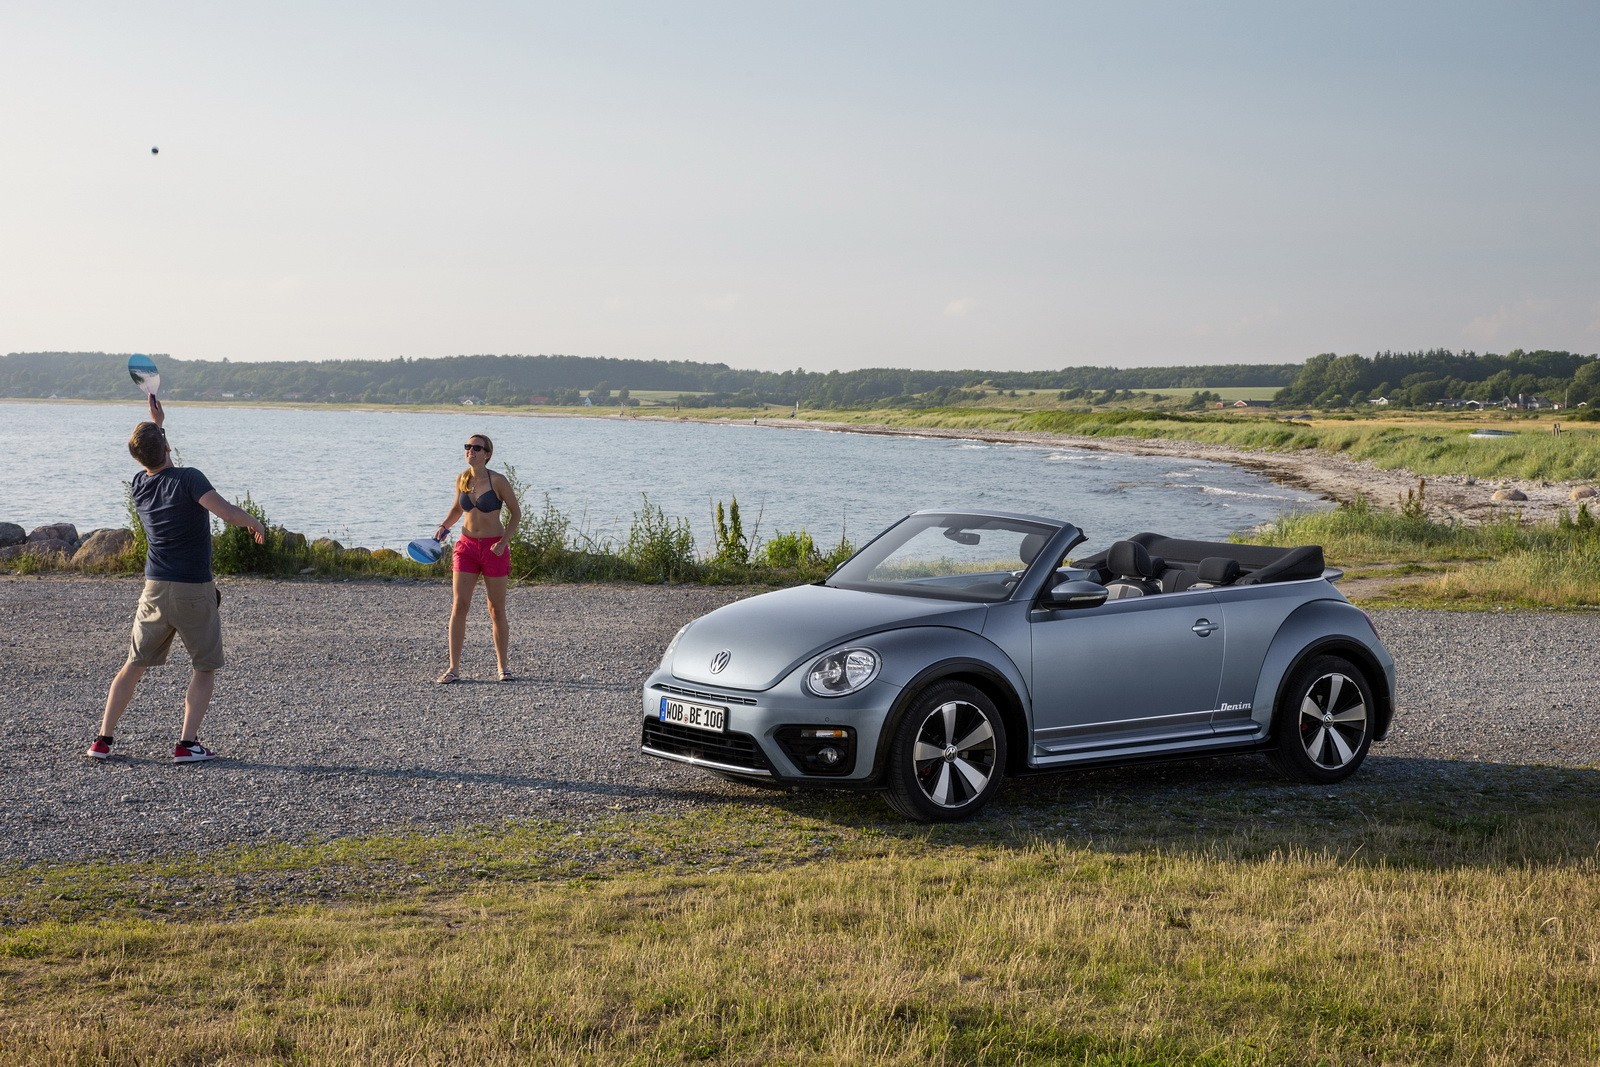 Volkswagen Beetle Convertible Uk moreover Volkswagen Beetle Grc in addition Regular Car Reviews Checks Out A Golf Tdi Talks About Cheating together with Vw Beetle Grc together with Lincoln Mkt. on volkswagen beetle grc